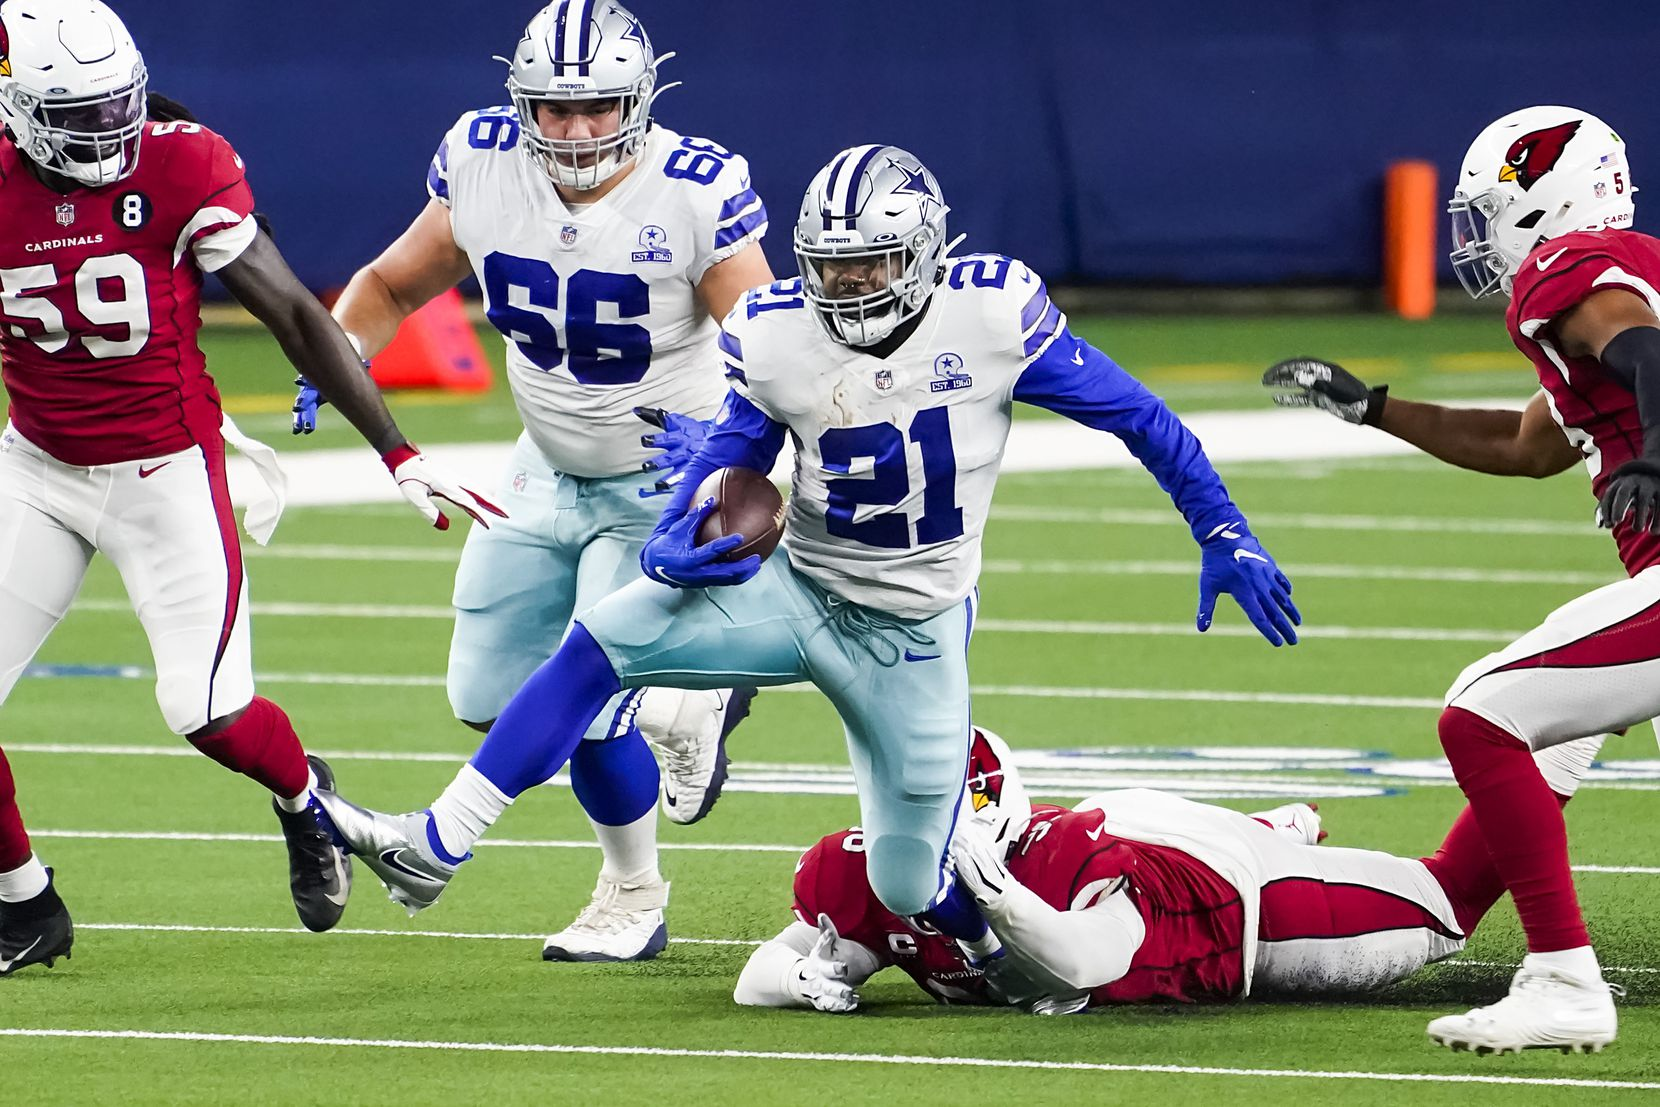 Dallas Cowboys running back Ezekiel Elliott (21) breaks through the Arizona Cardinals defense during the first quarter of an NFL football game at AT&T Stadium on Monday, Oct. 19, 2020, in Arlington. (Smiley N. Pool/The Dallas Morning News)